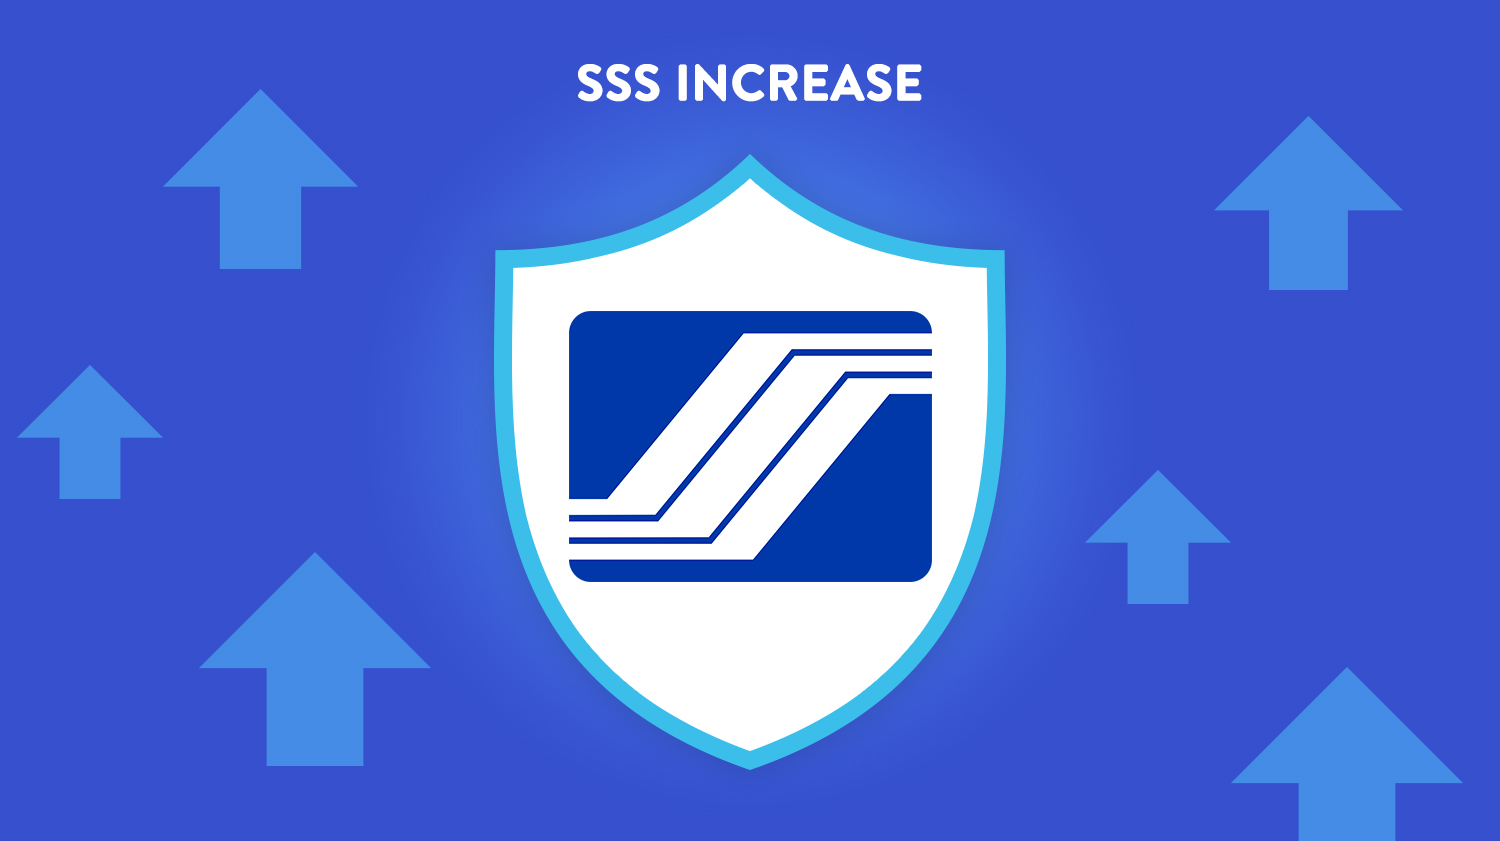 The SSS contribution rate will increase in April: What does this mean for you?